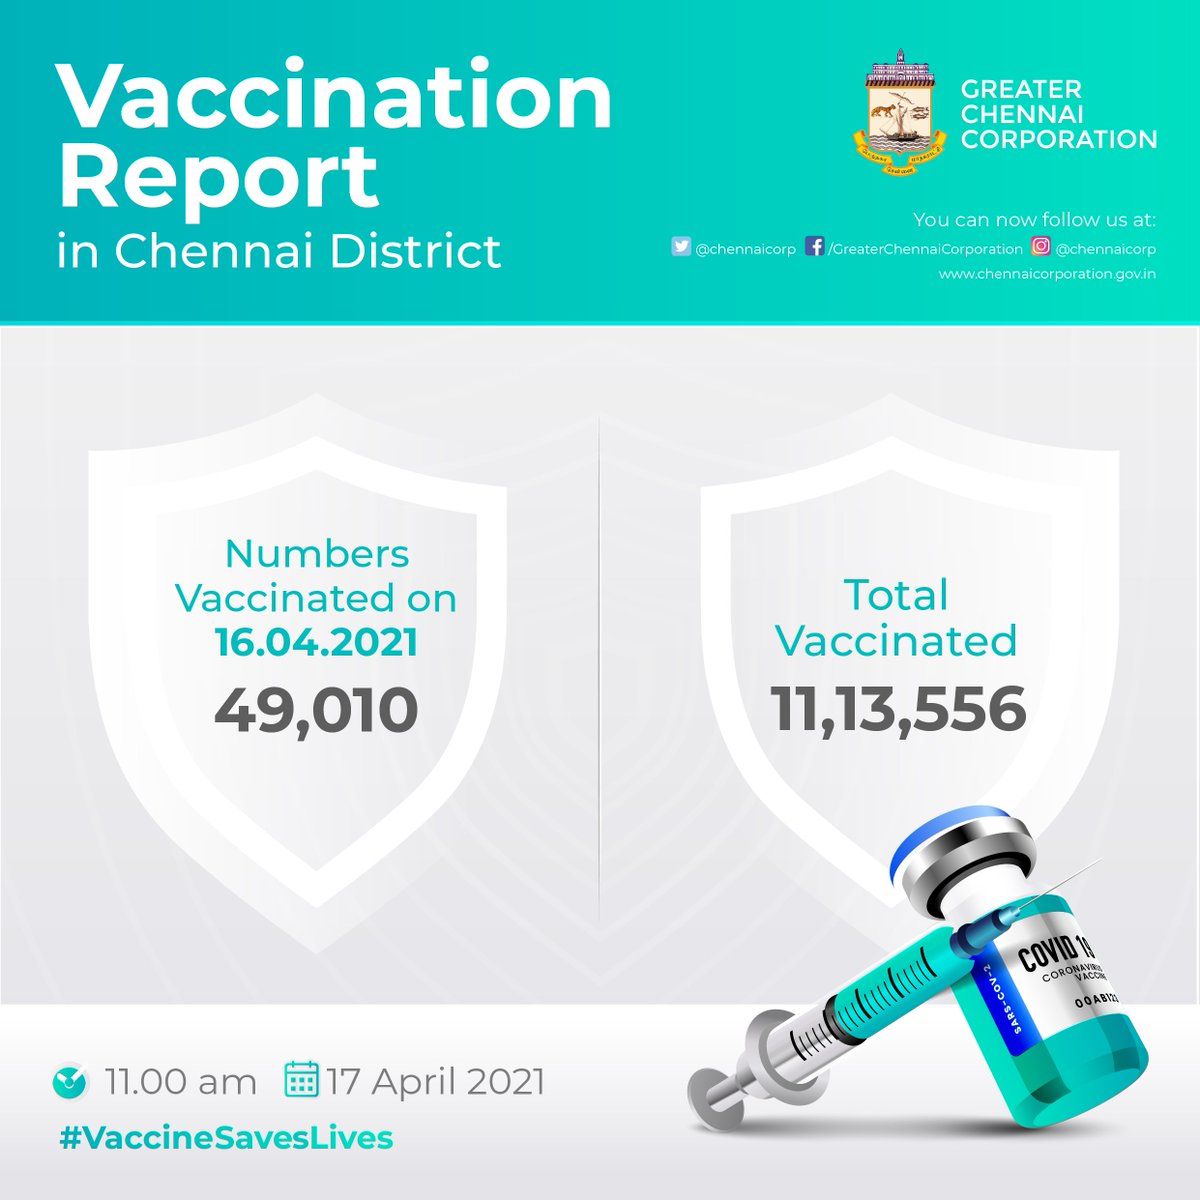 Vaccination Report in #Chennai District  As of 16.04.2021, a total of 11,13,556 people have been vaccinated in Chennai and 49,010 people have been vaccinated on 16.04.2021.  #VaccineSavesLives  #Covid19Chennai #GCC #ChennaiCorporation https://t.co/aEqat0NUoa